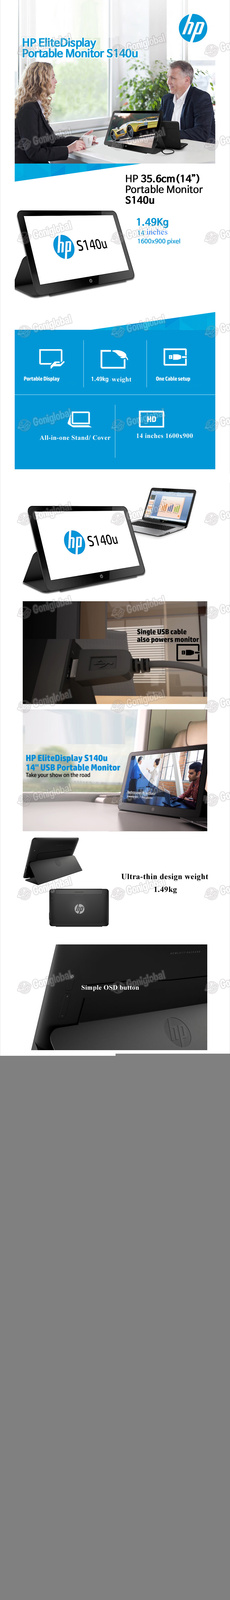 HP HP EliteDisplay S140U 14inch Portable Monitor / USB Type / Laptop Sub Monitor